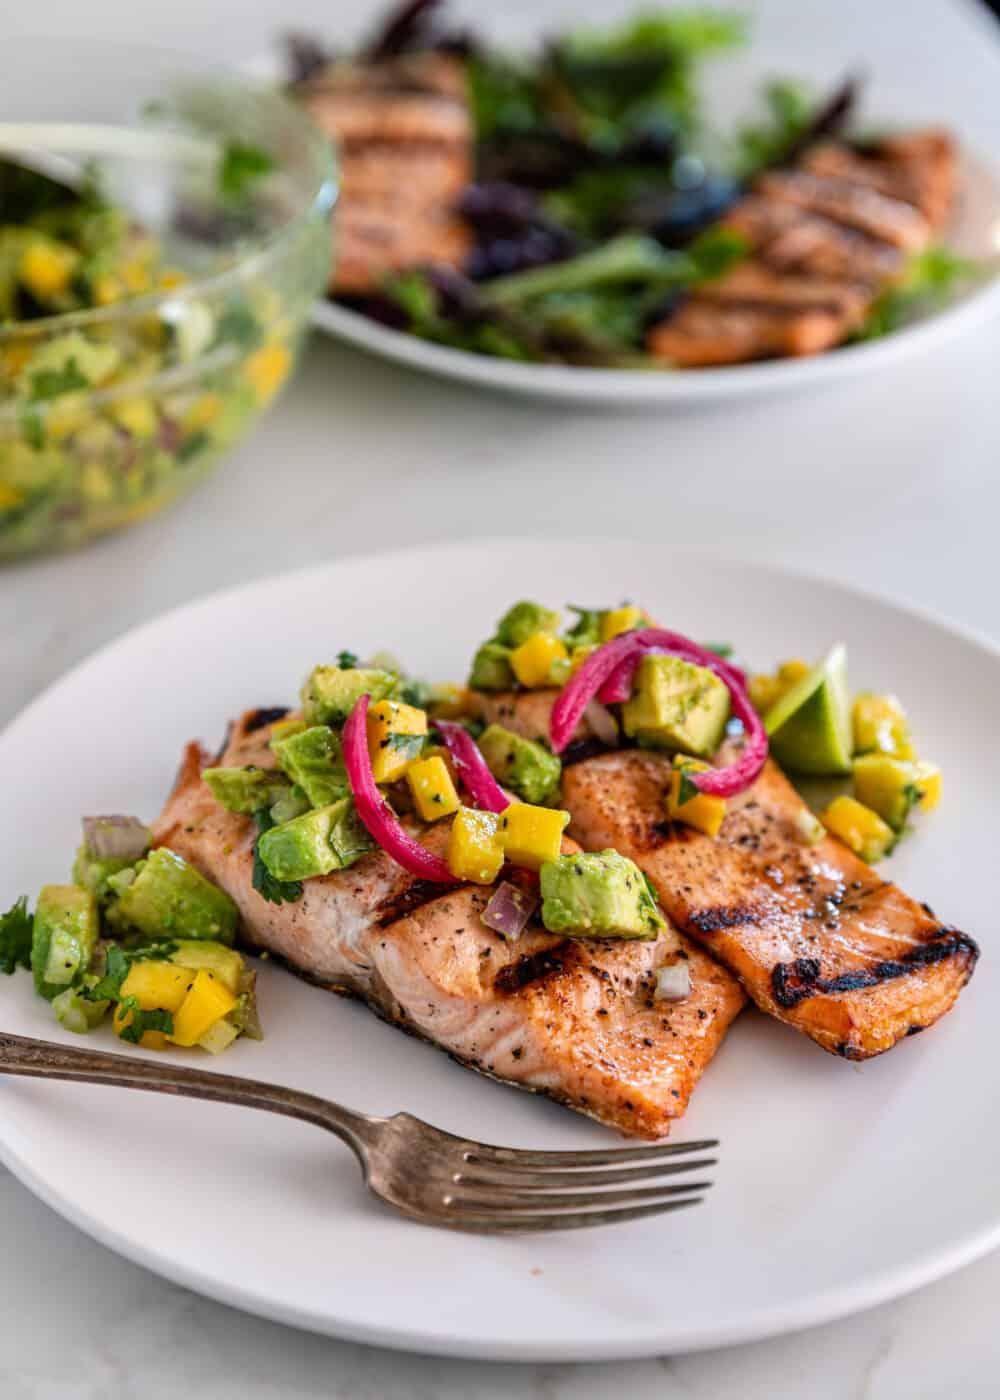 flaky fish topped with pieces of avocado, mango and pickled red onion